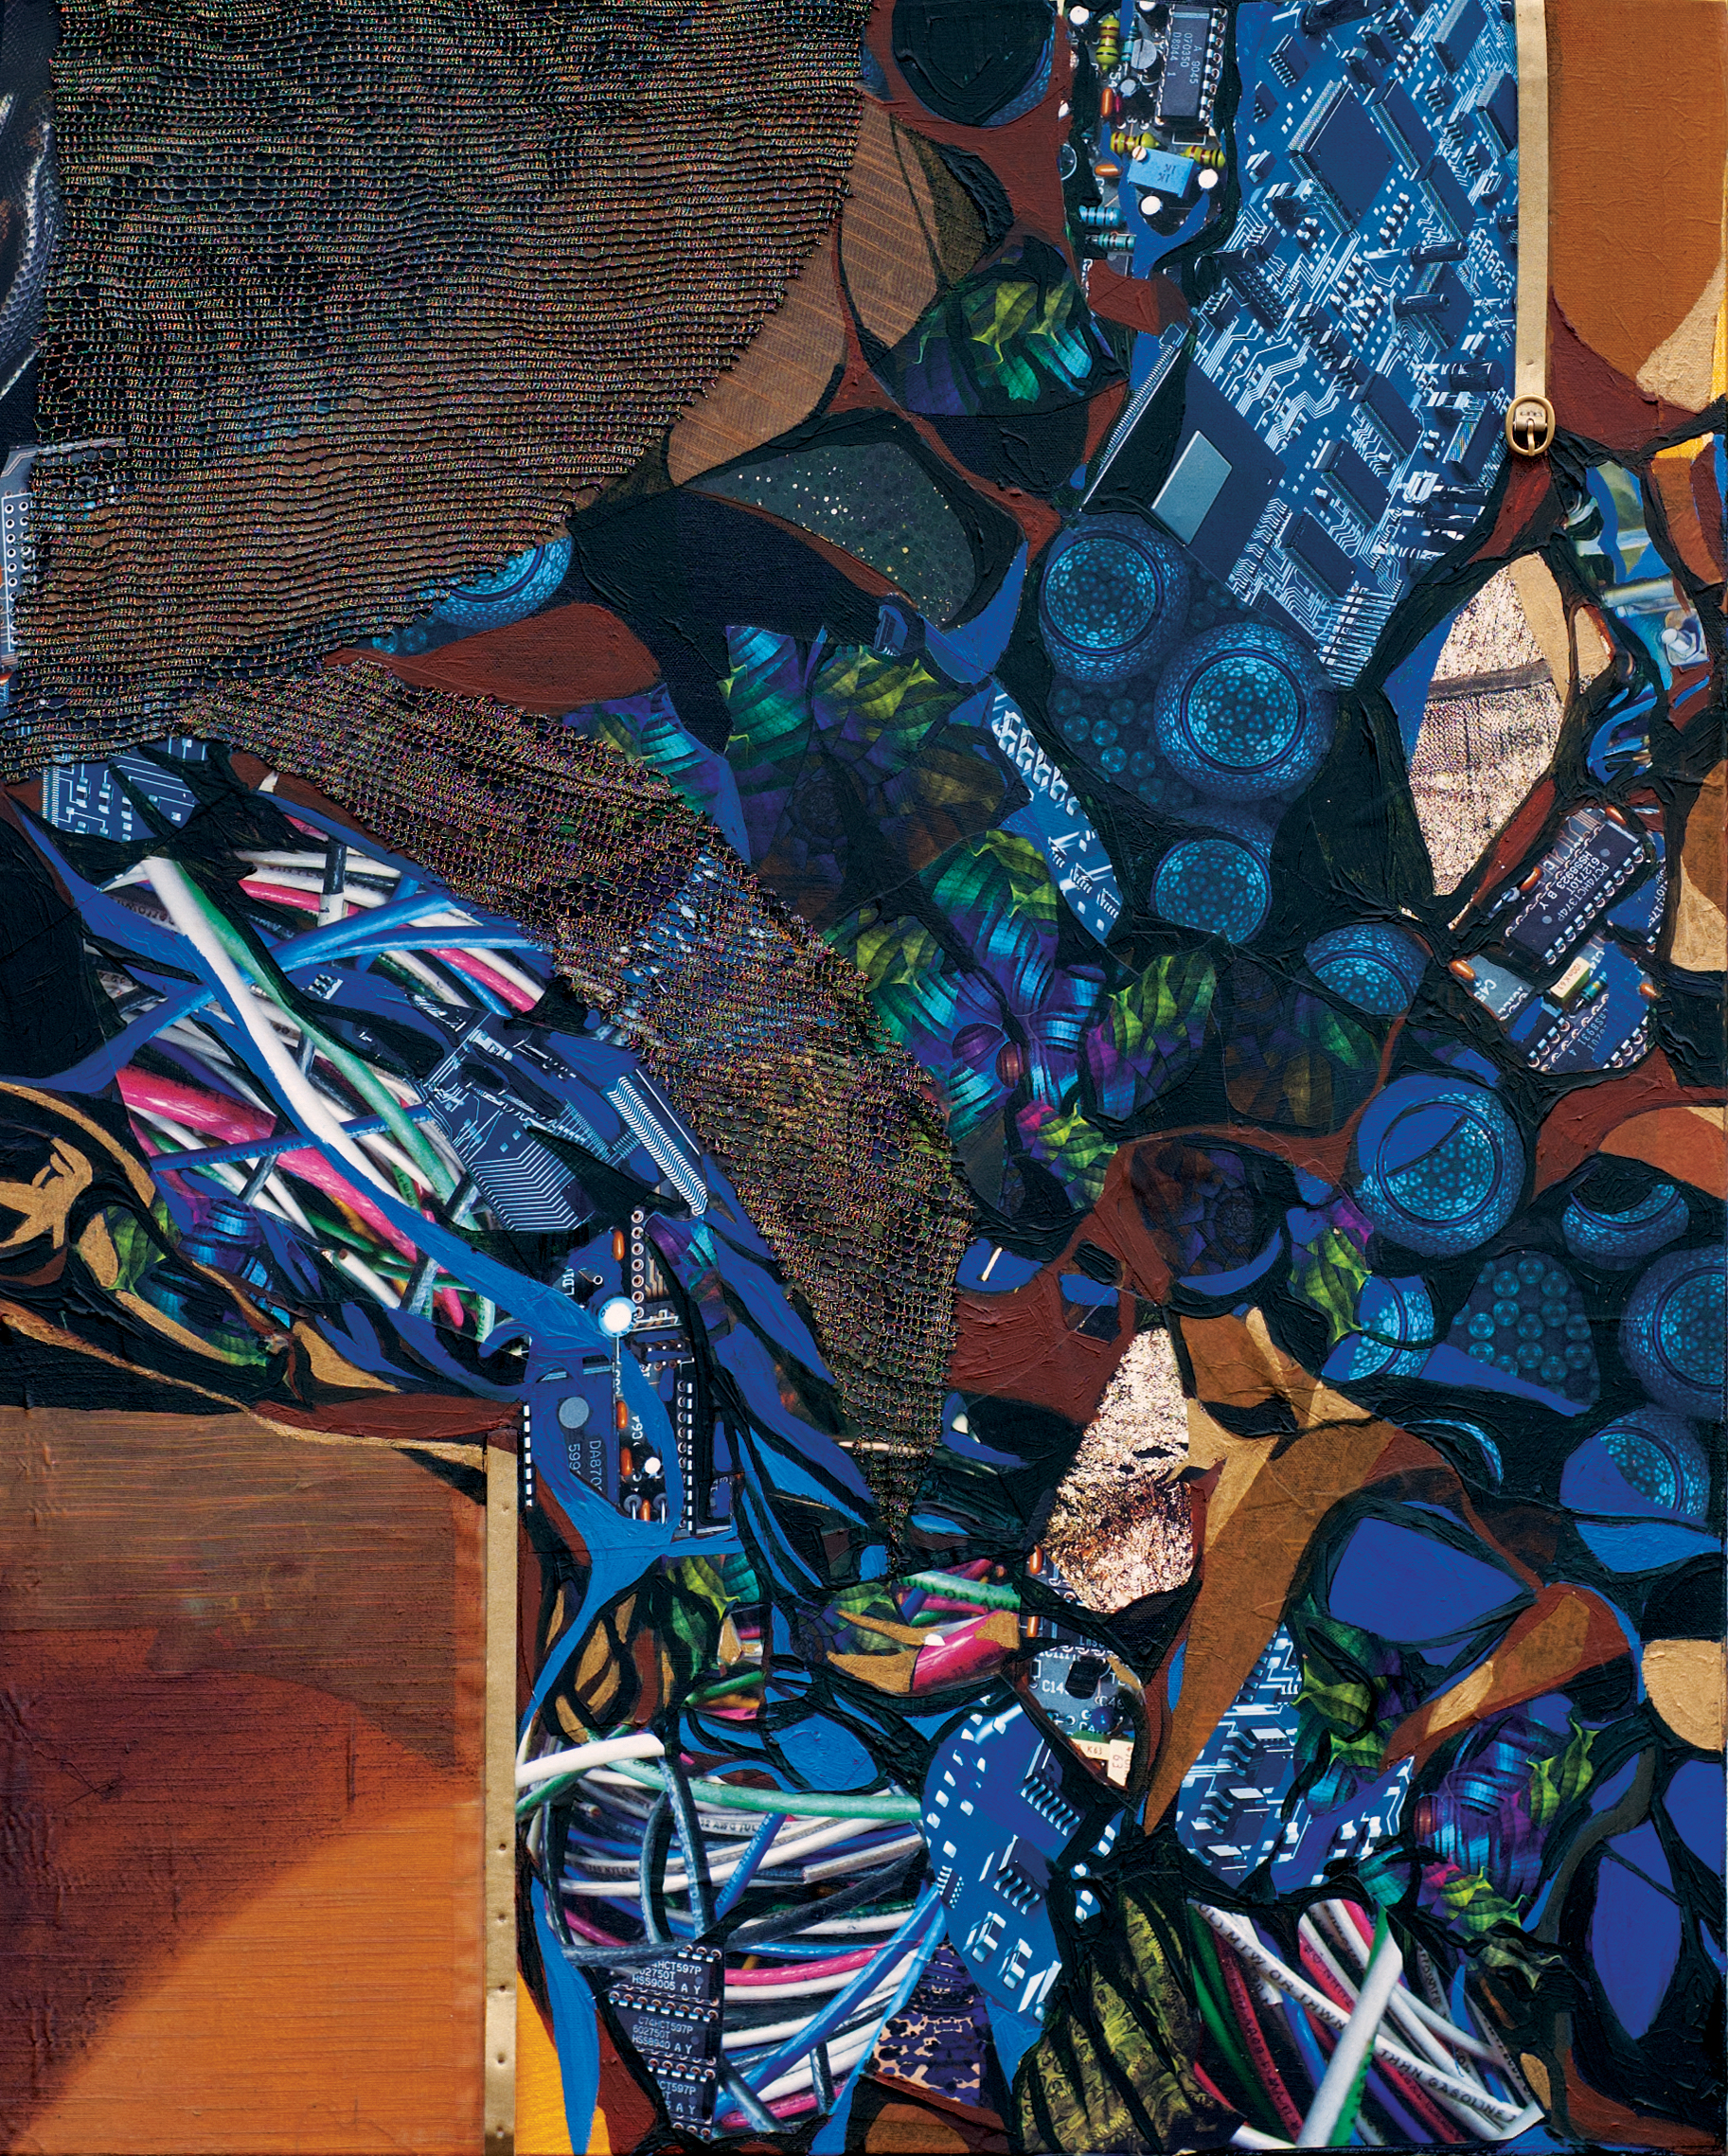 "Я20   Oil and Mixed Media on Canvas  24"" x 30"", 2012"